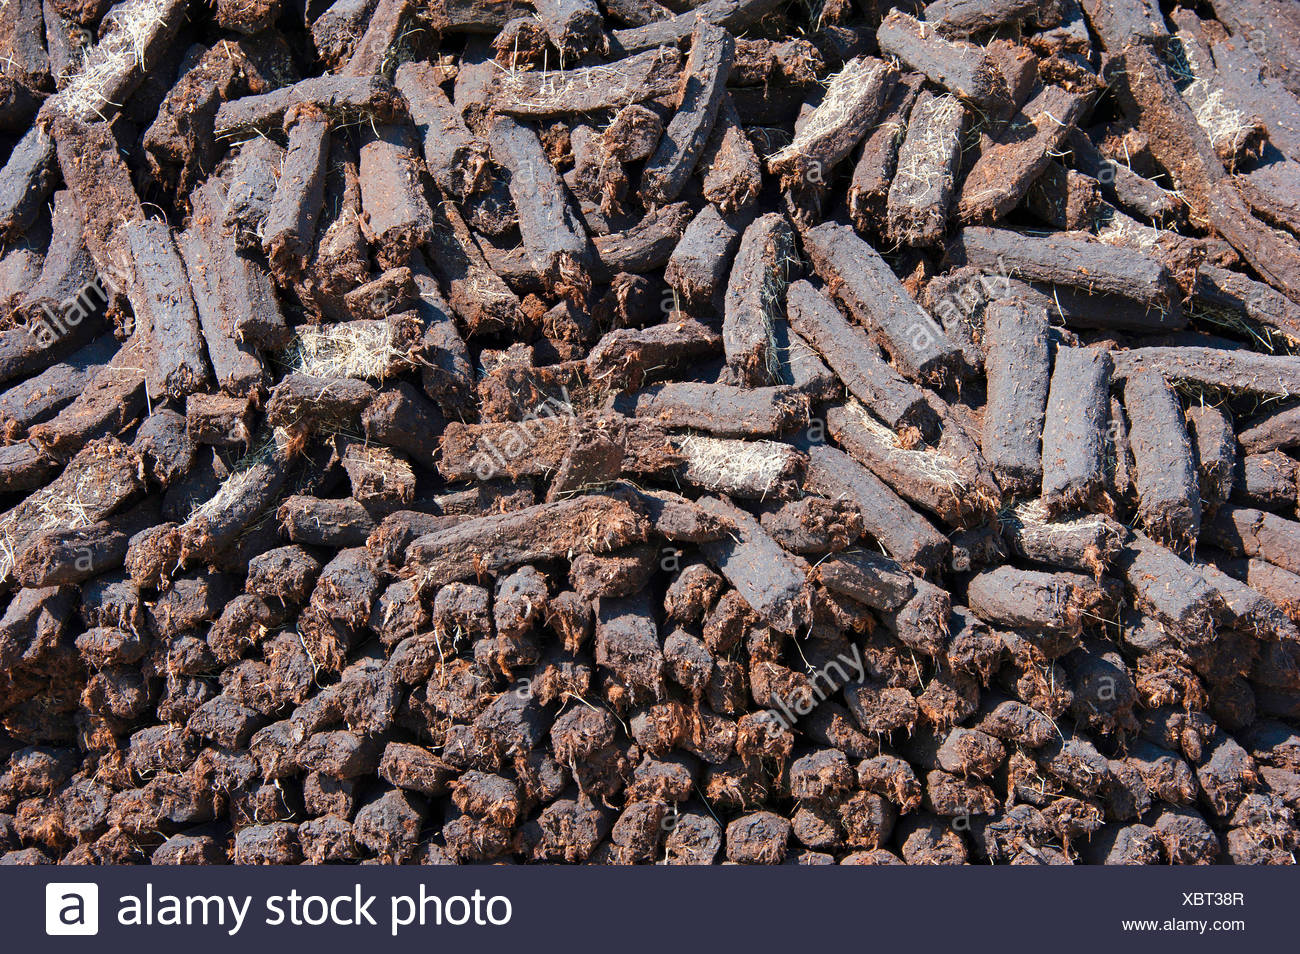 peat cutting, heap with sods of peat, Germany, Lower Saxony, Wilhelmsfehn - Stock Image